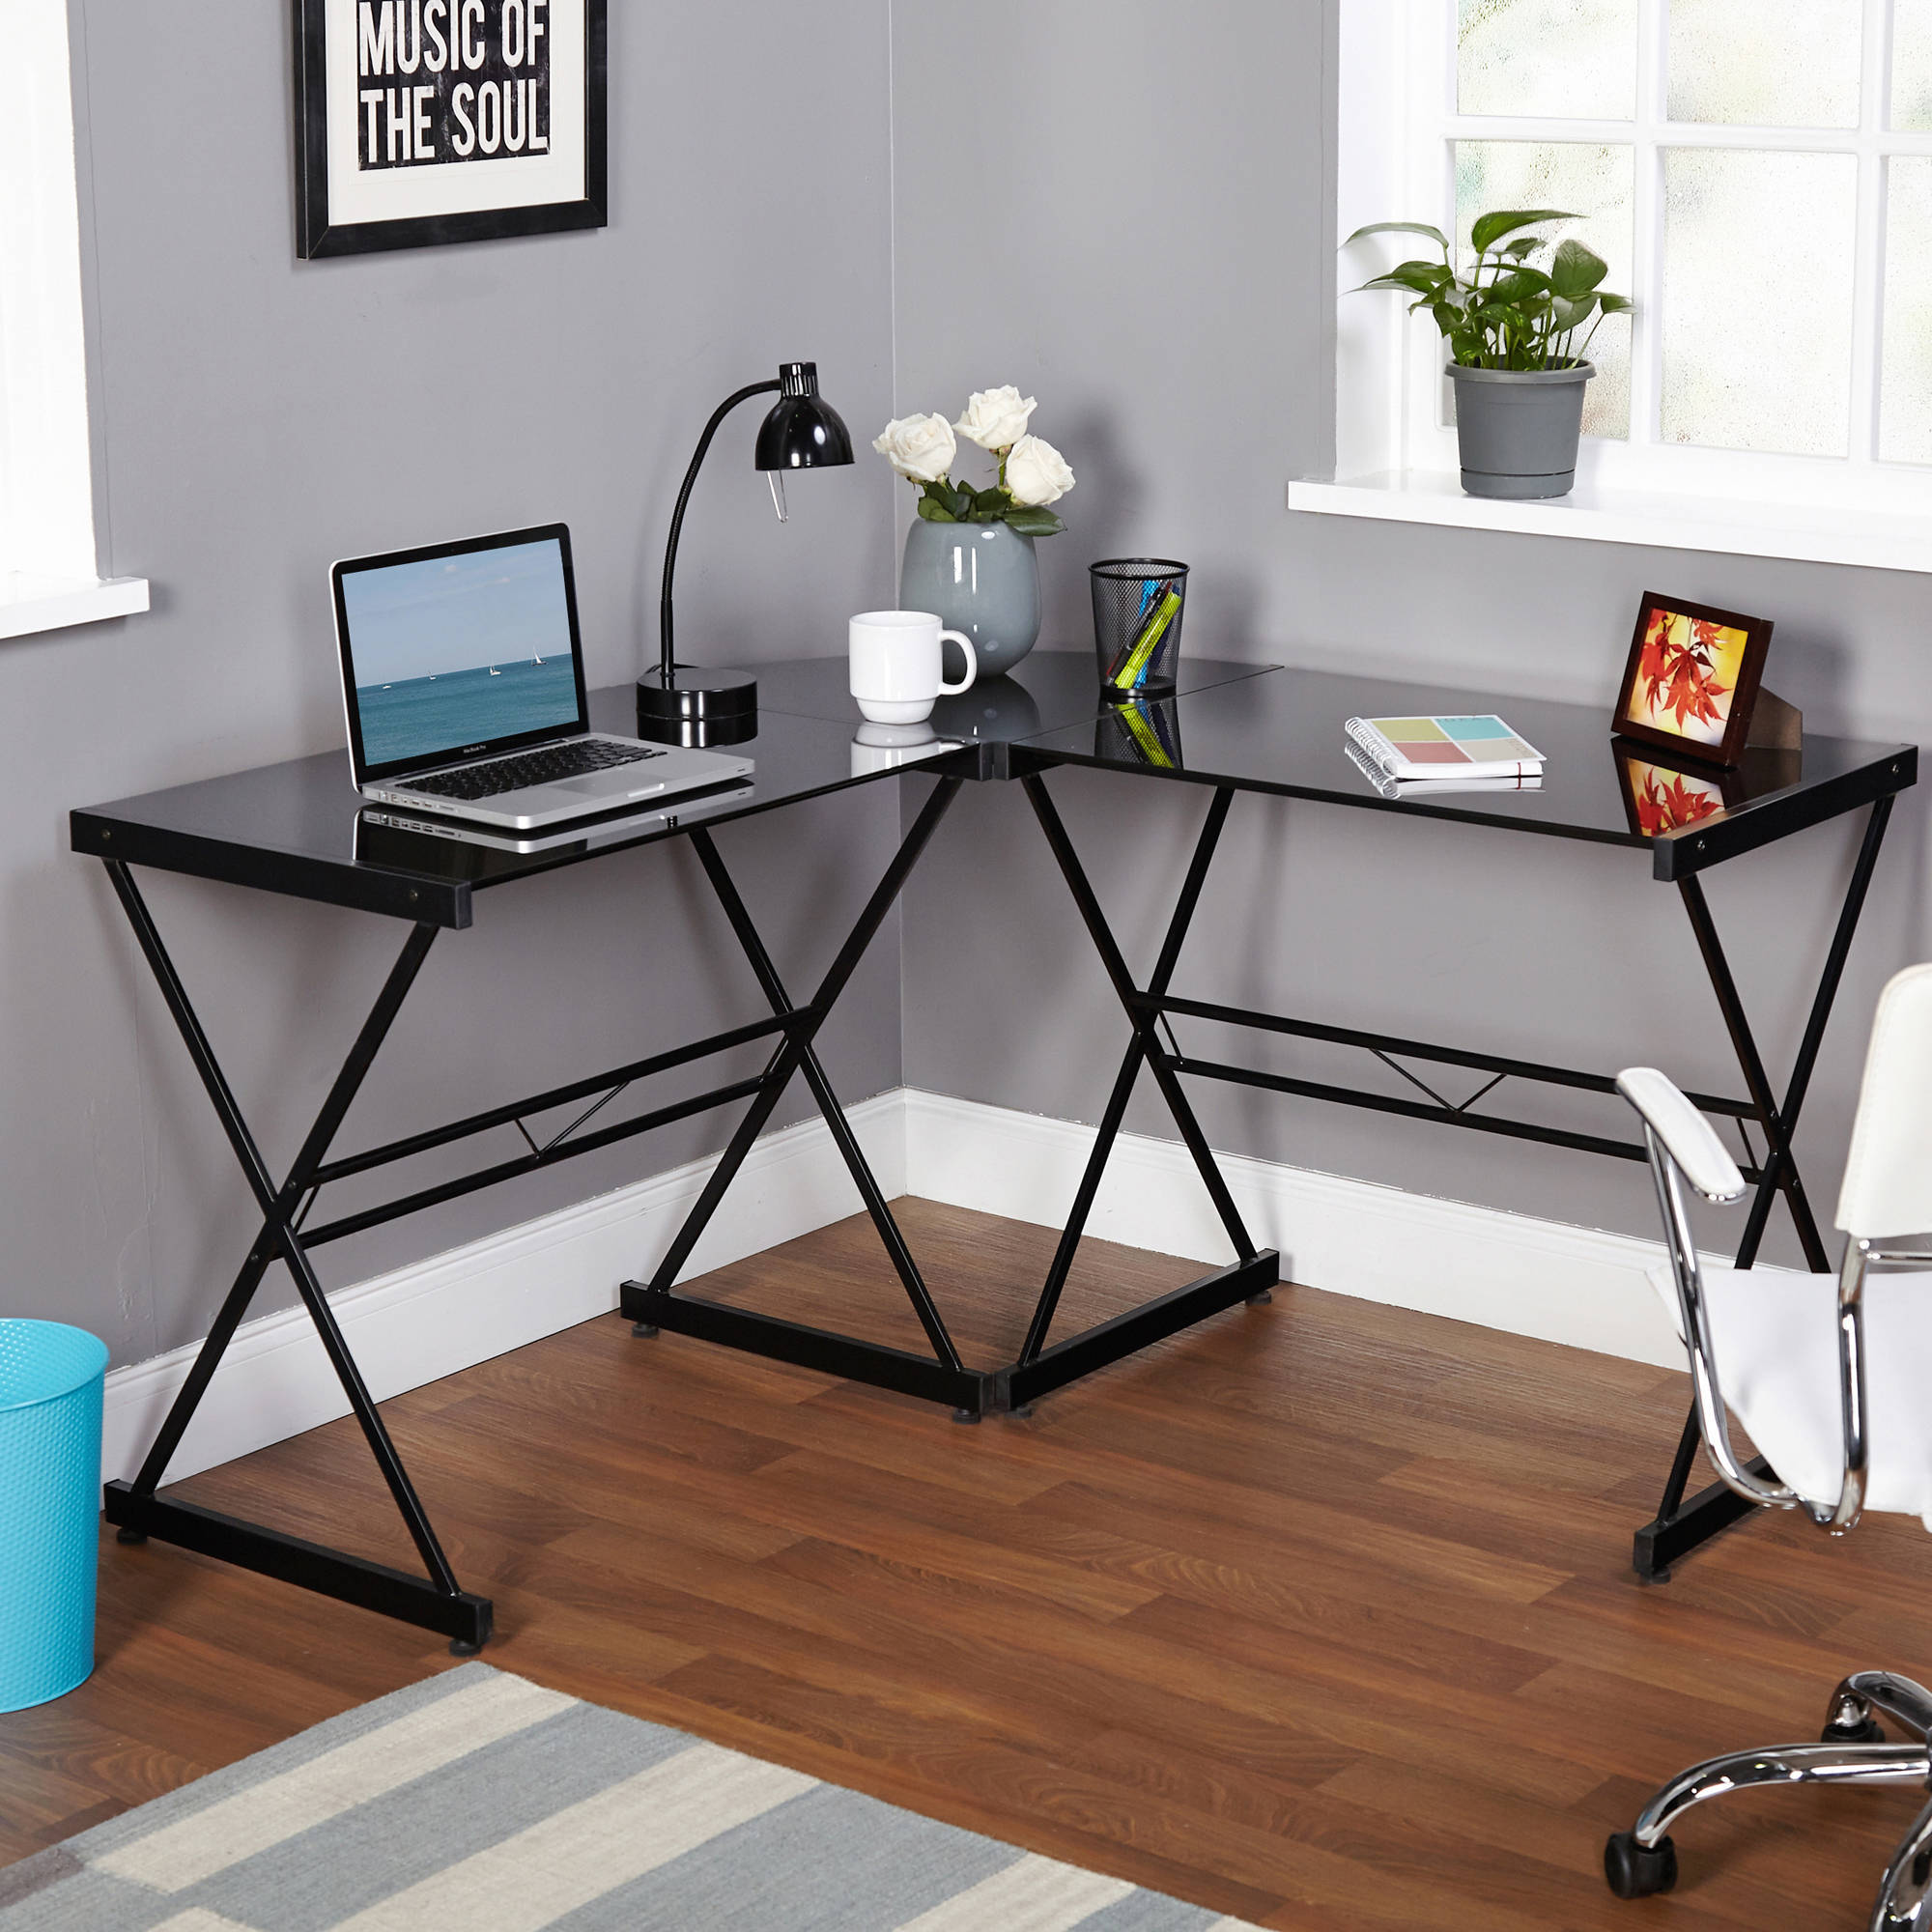 Laminate Puter Small Bar For Living Room Home Portable Atrium Metal and Glass L-shaped Computer Desk, Multiple Colors - Walmart.com